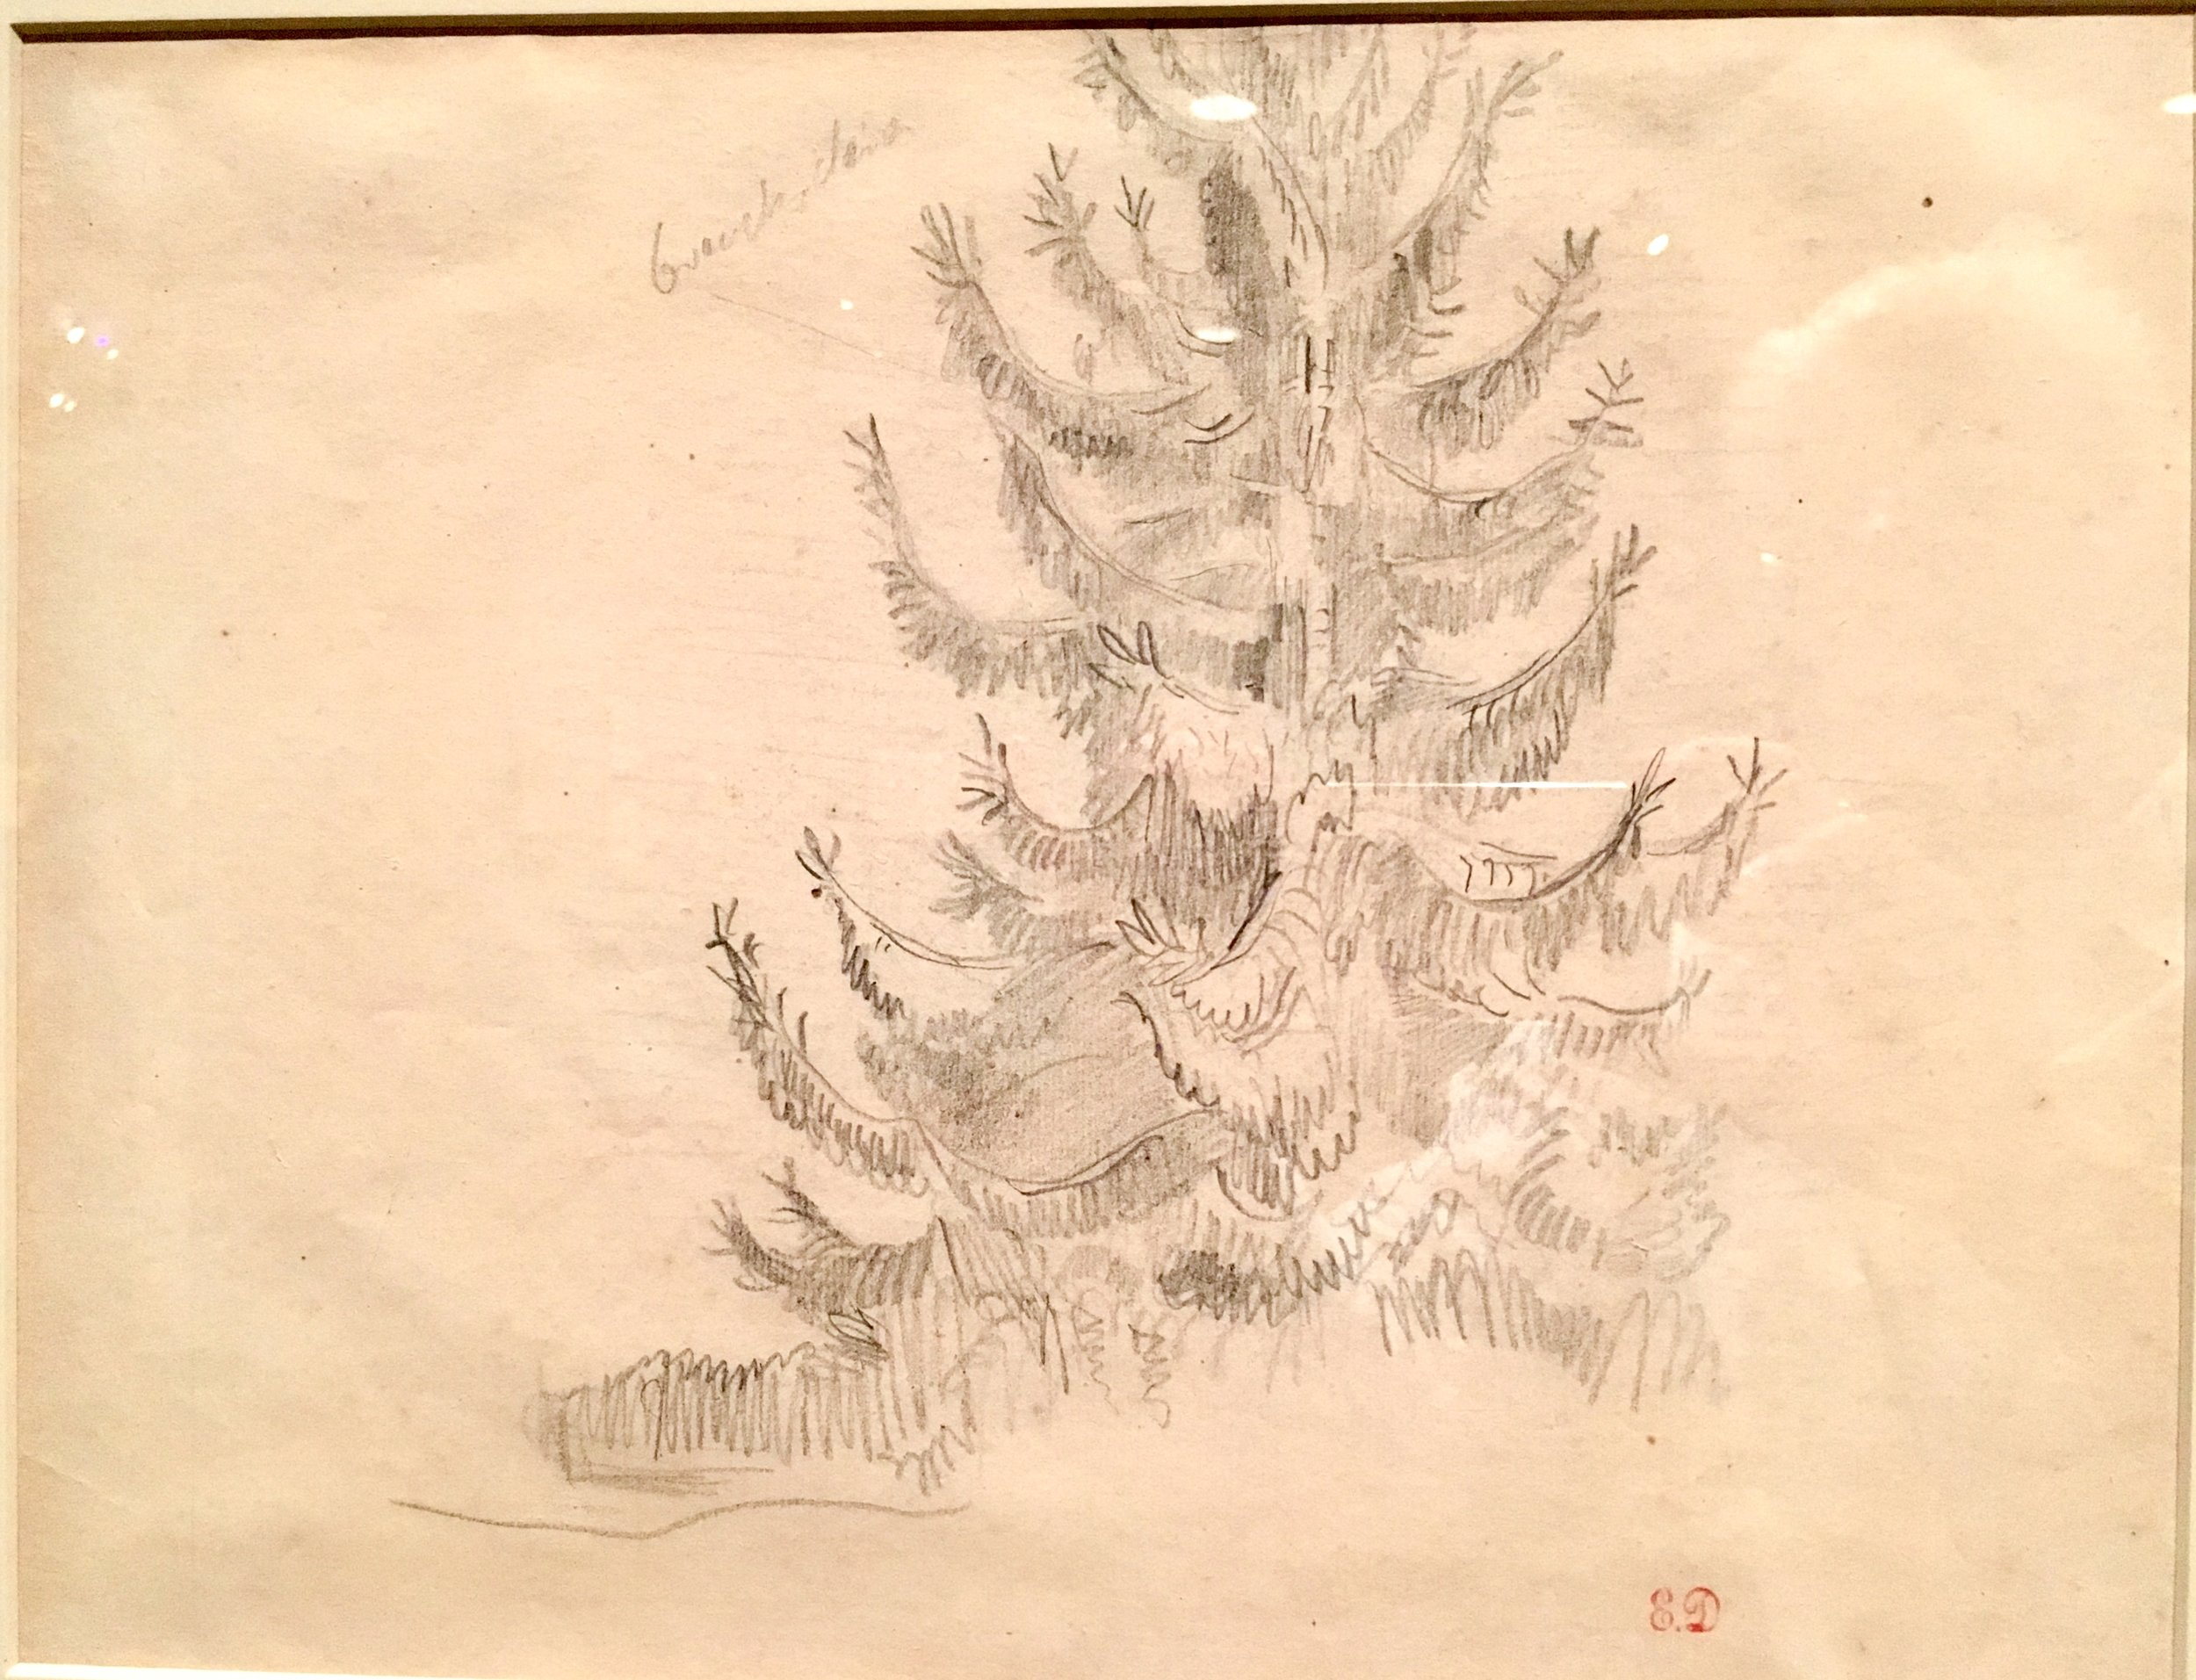 Fir Tree, 1850s.  graphite, Eugène Delacroix. after an initial 1844 visit to Champrosay, south of Paris,  Delacroix increasingly spent time in nature, recording his impressions in his journals and in his drawing books (photograph J. Cook)